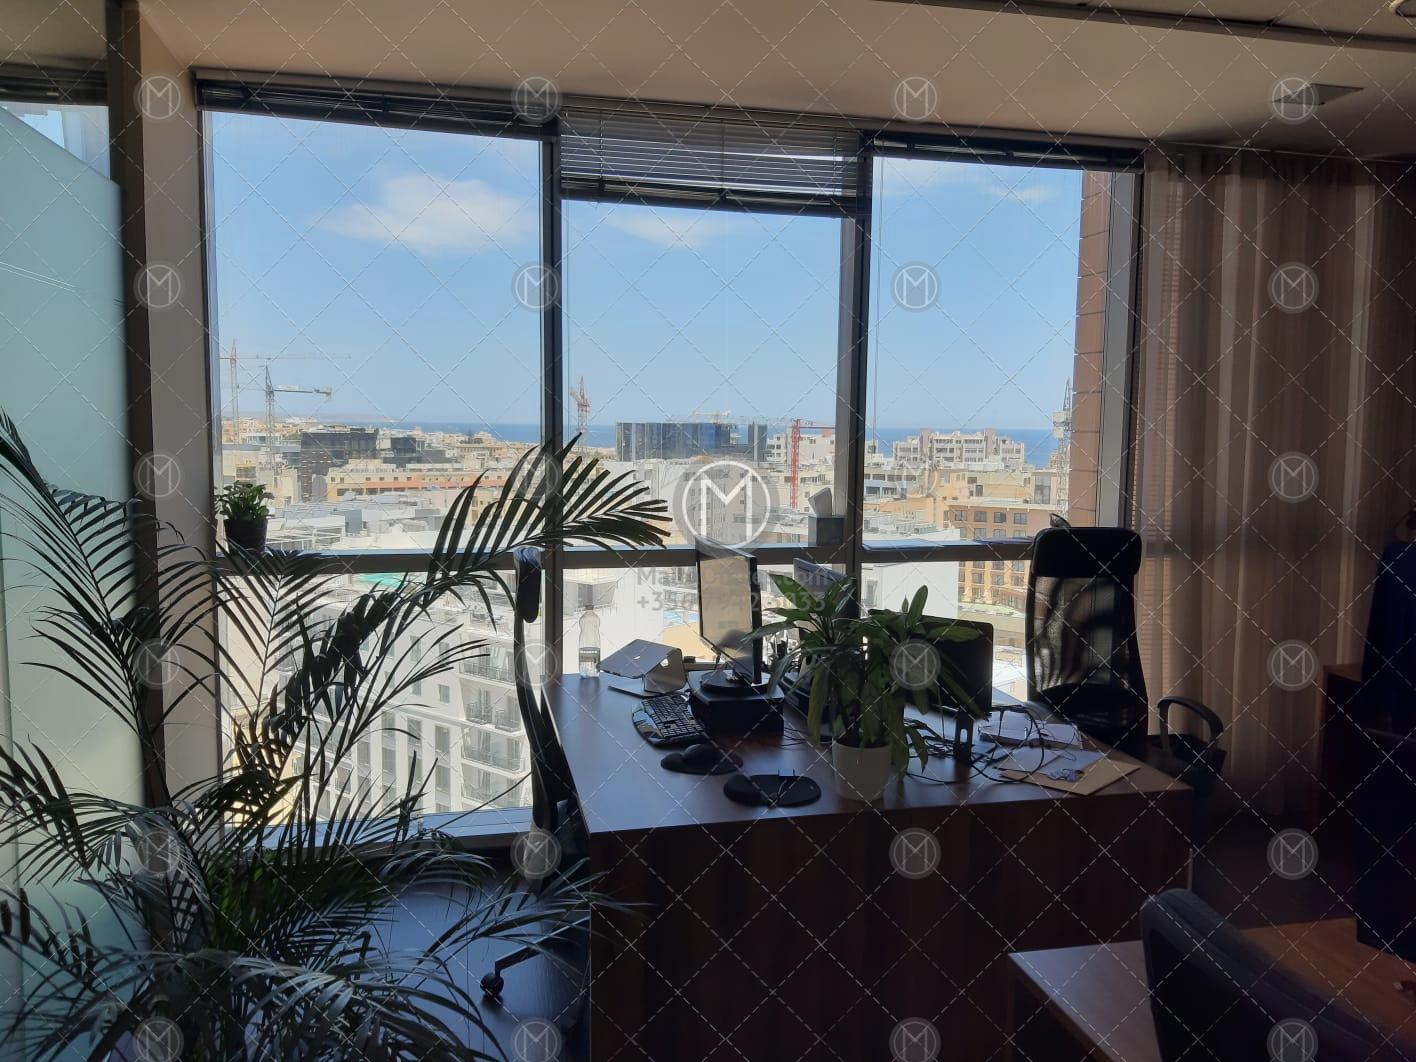 Portomaso Office Space for Rent (300m2)